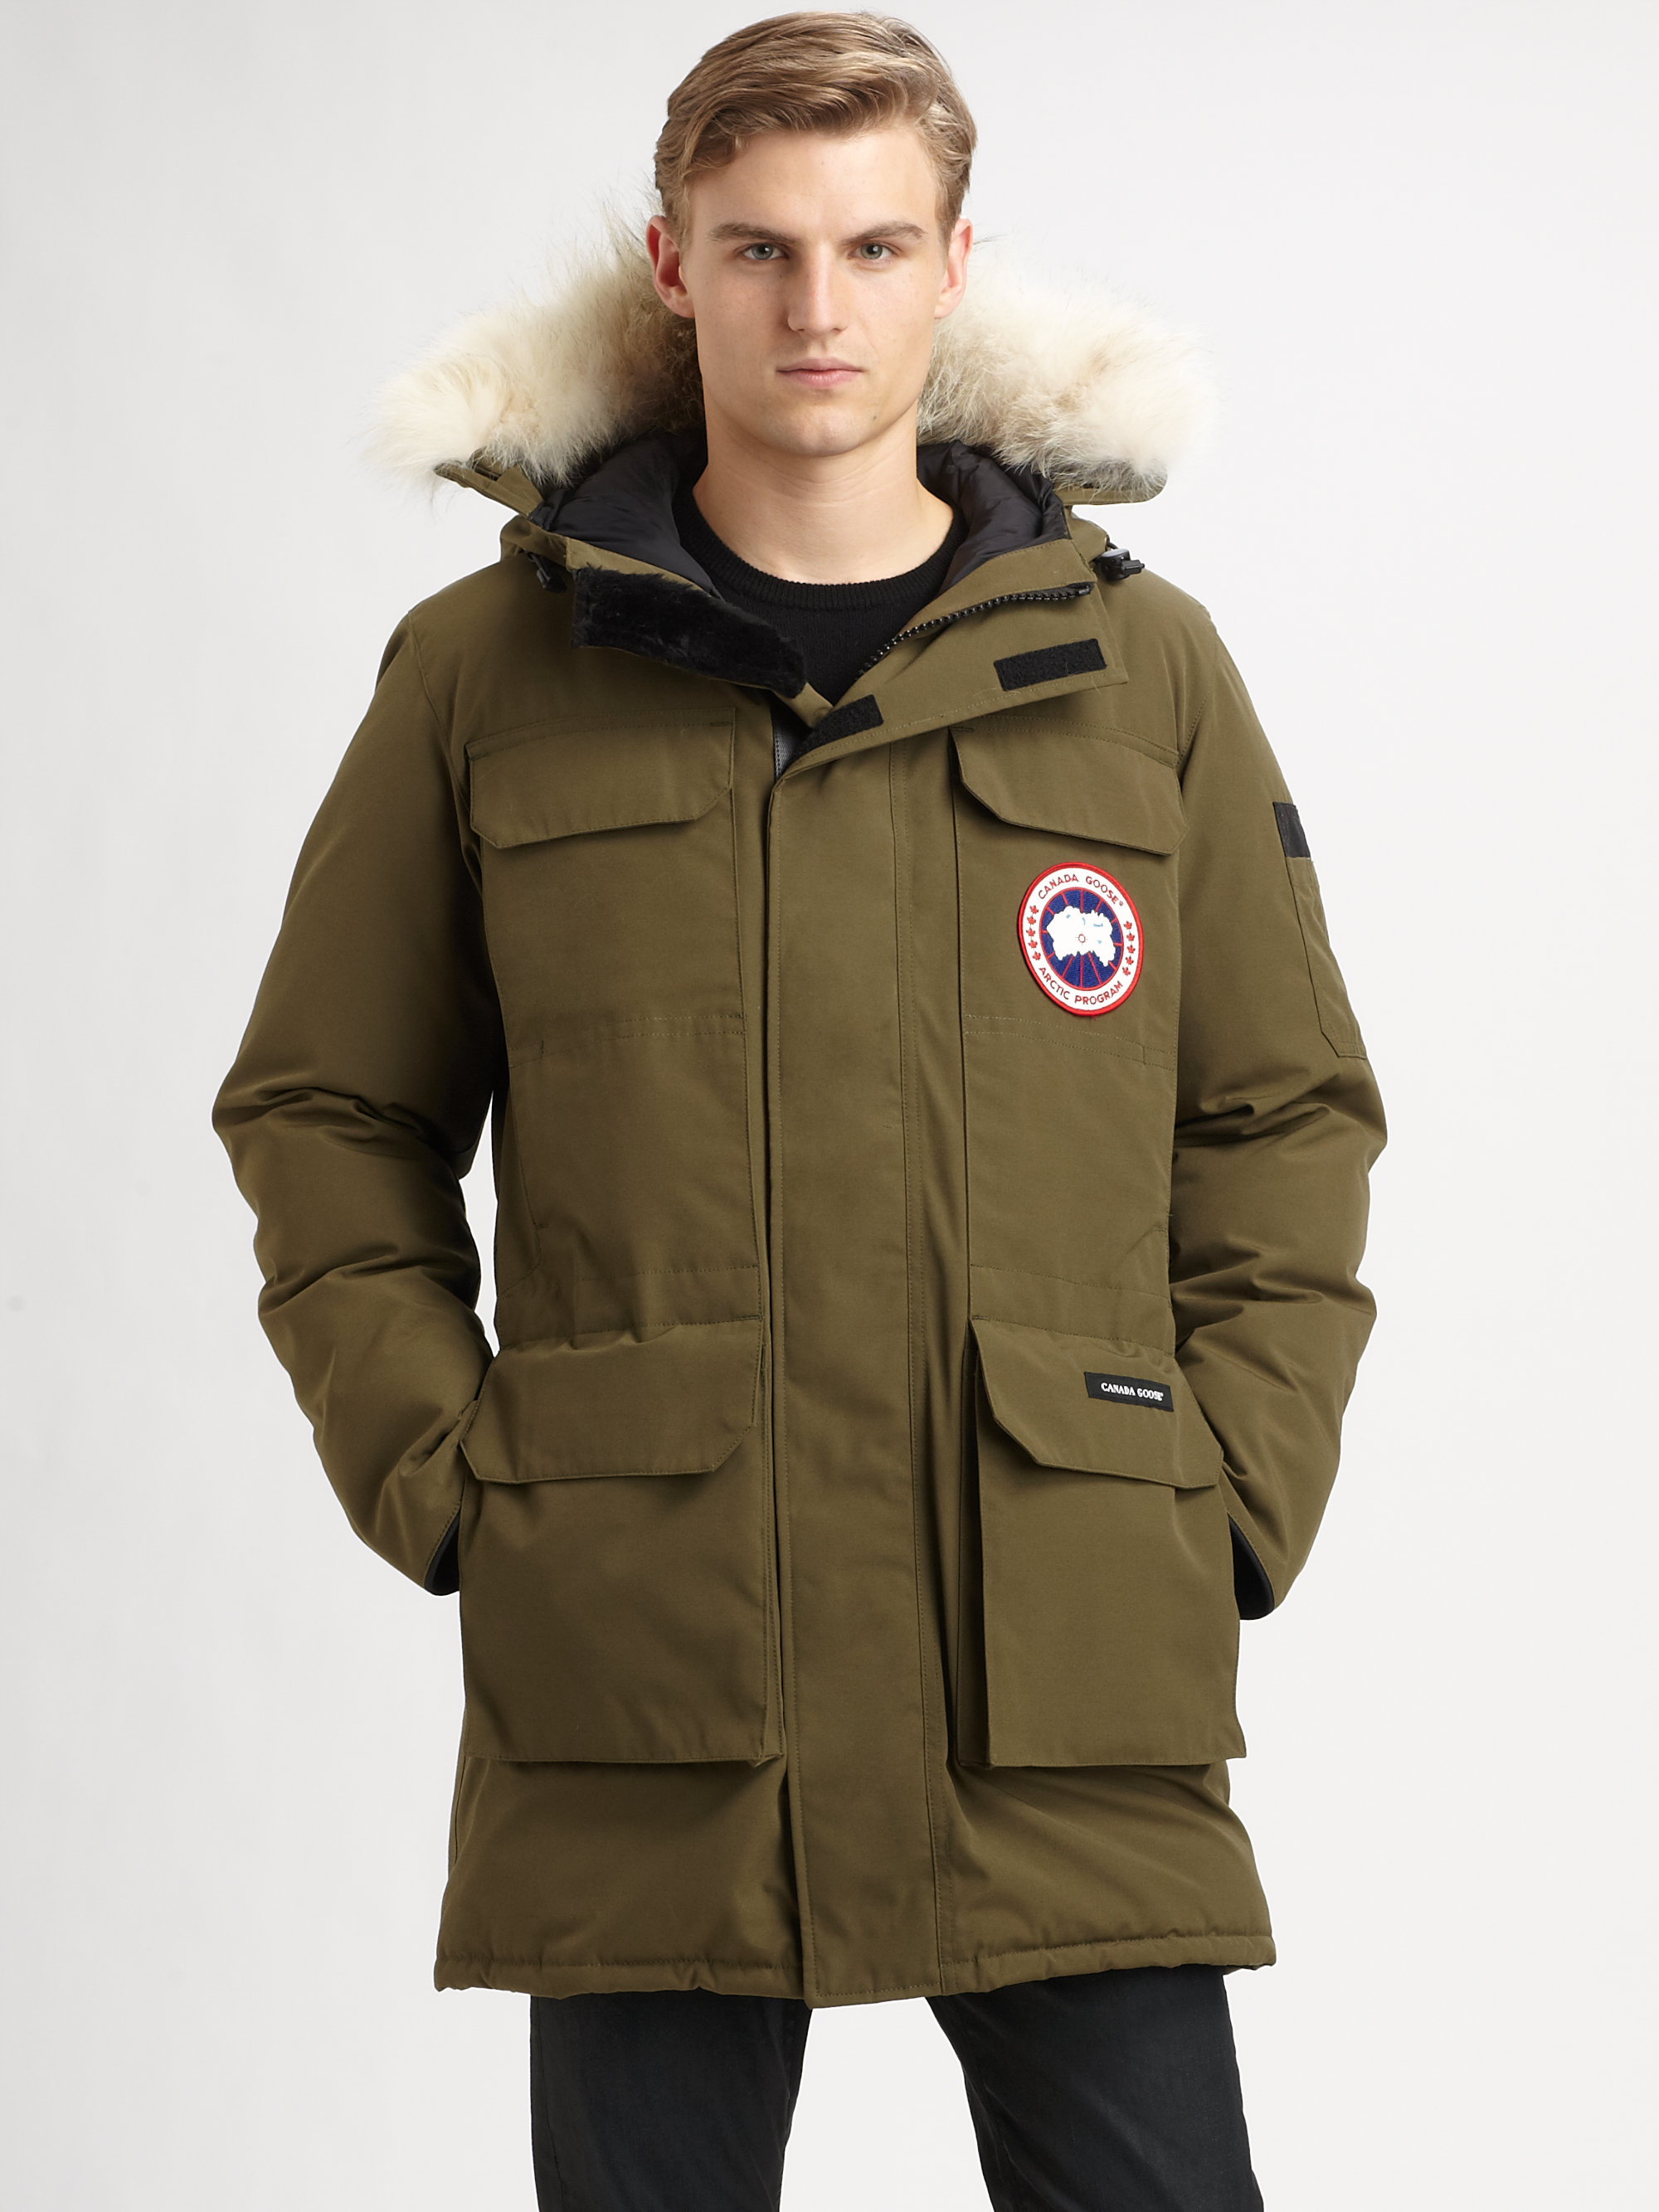 Shop for womens parka jackets online at fabulousdown4allb7.cf Next day delivery & free returns available. s of products online. Buy womens hooded parka jackets now!